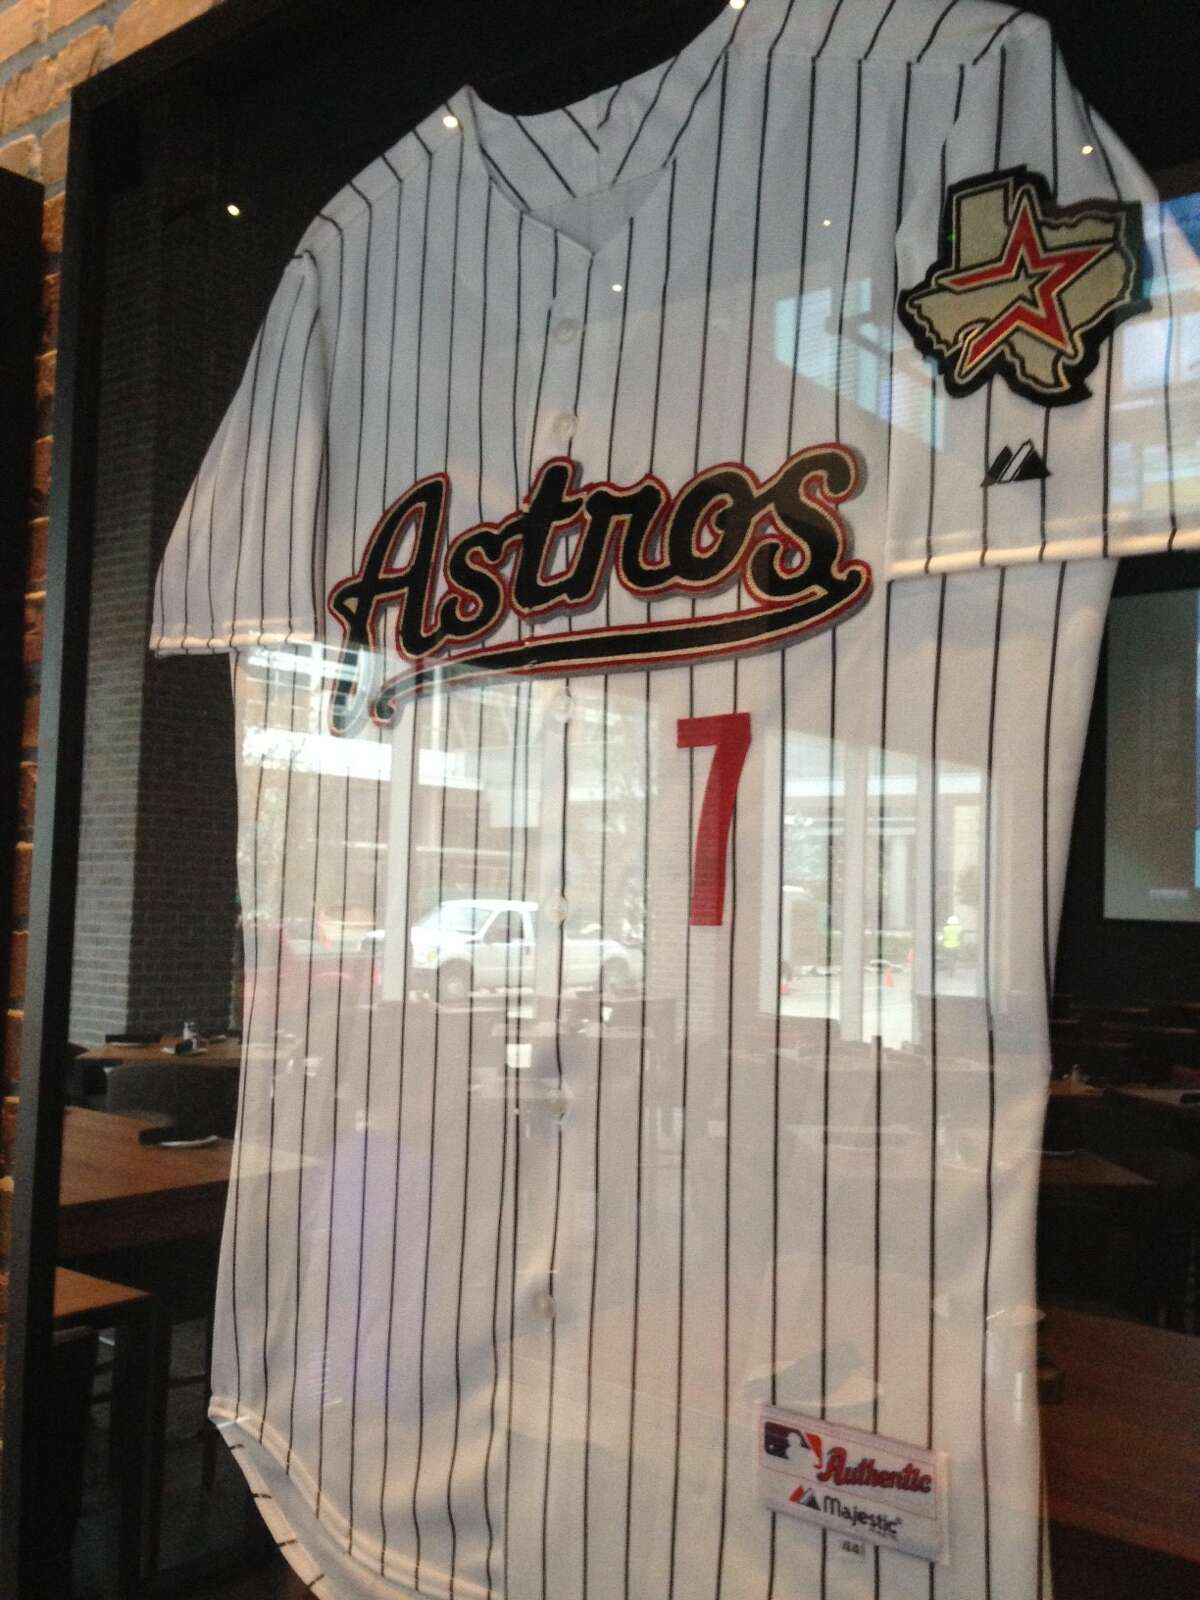 Biggio's, a sports bar that is a partnership between the former Astros star Craig Biggio and Marriott, opened at the 1,000-room Marriott Marquis Houston. Shown: Sports memorabilia.